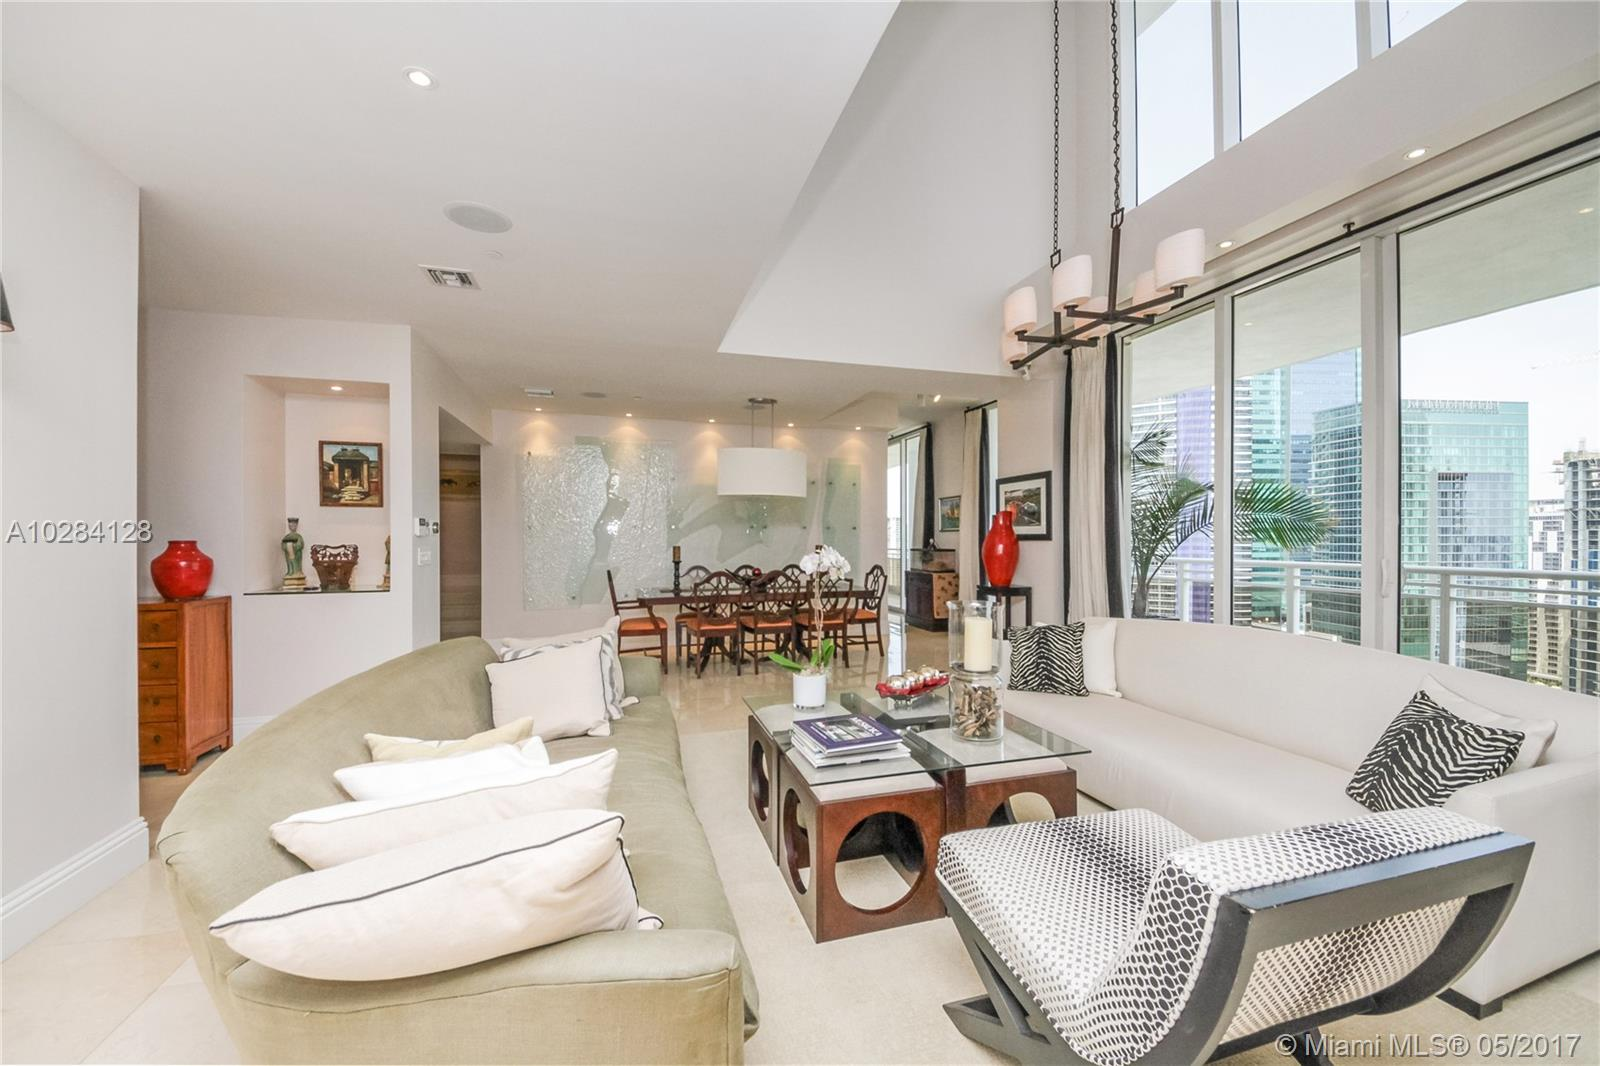 901 Brickell key blvd-PH3705 miami--fl-33131-a10284128-Pic16